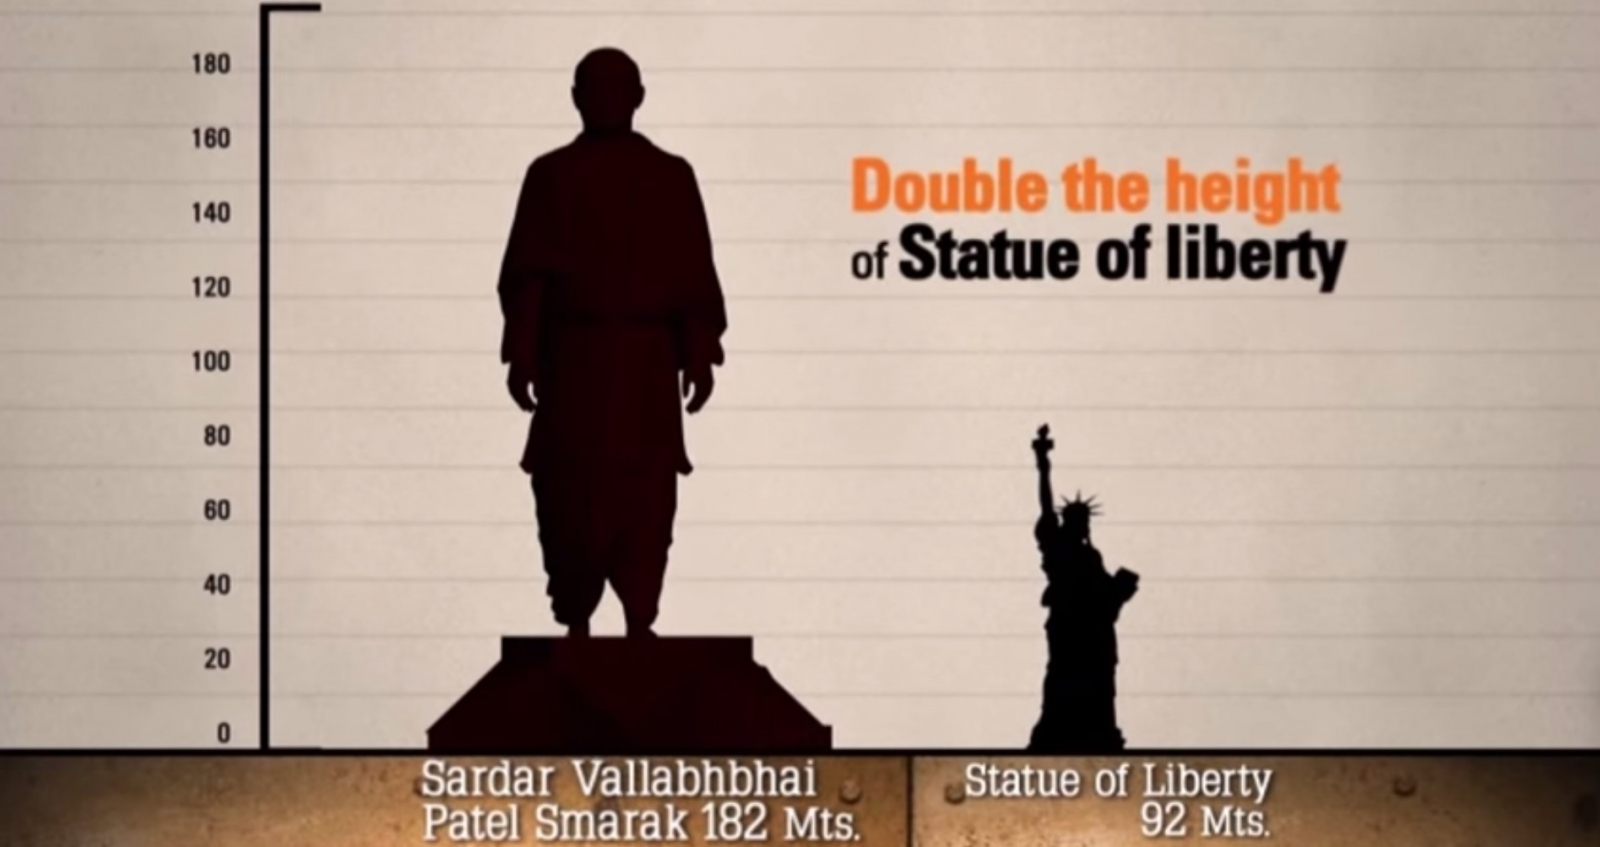 Statue of Liberty Statue of Unity India world tallest statue